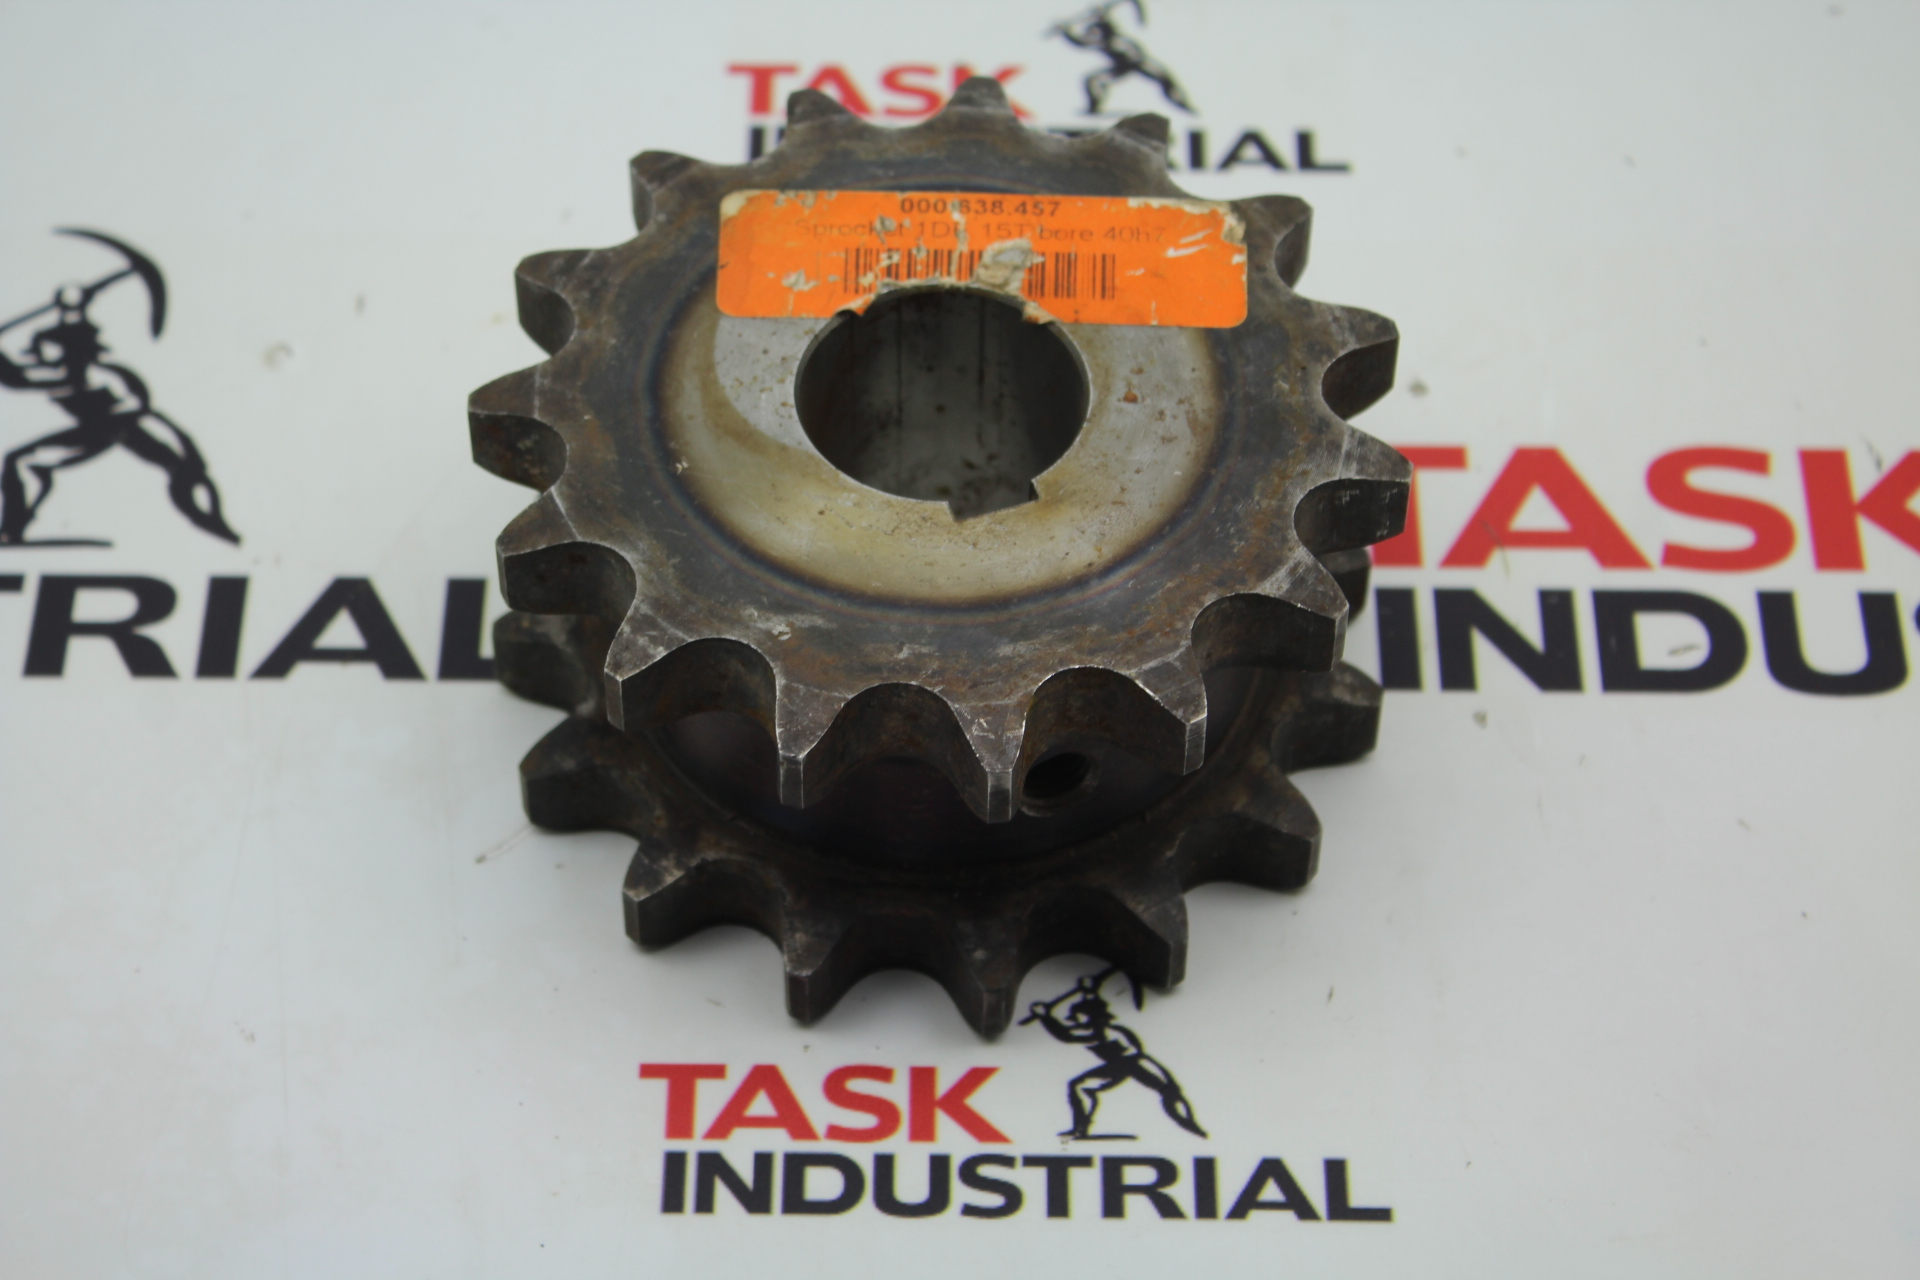 Sprocket 1DE 15T bore 40h7 000.638.457